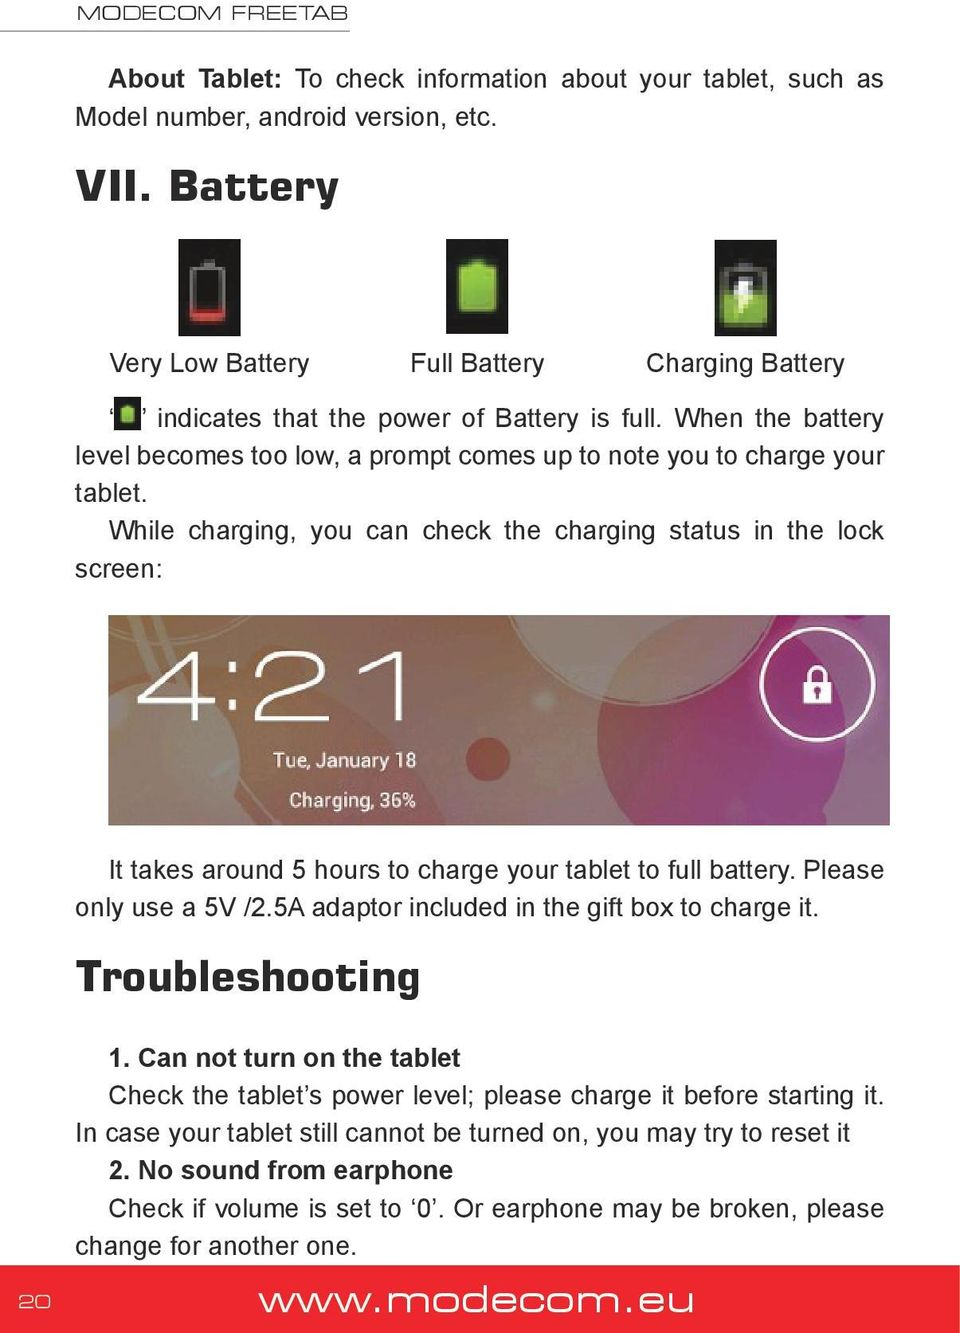 While charging, you can check the charging status in the lock screen: It takes around 5 hours to charge your tablet to full battery. Please only use a 5V /2.